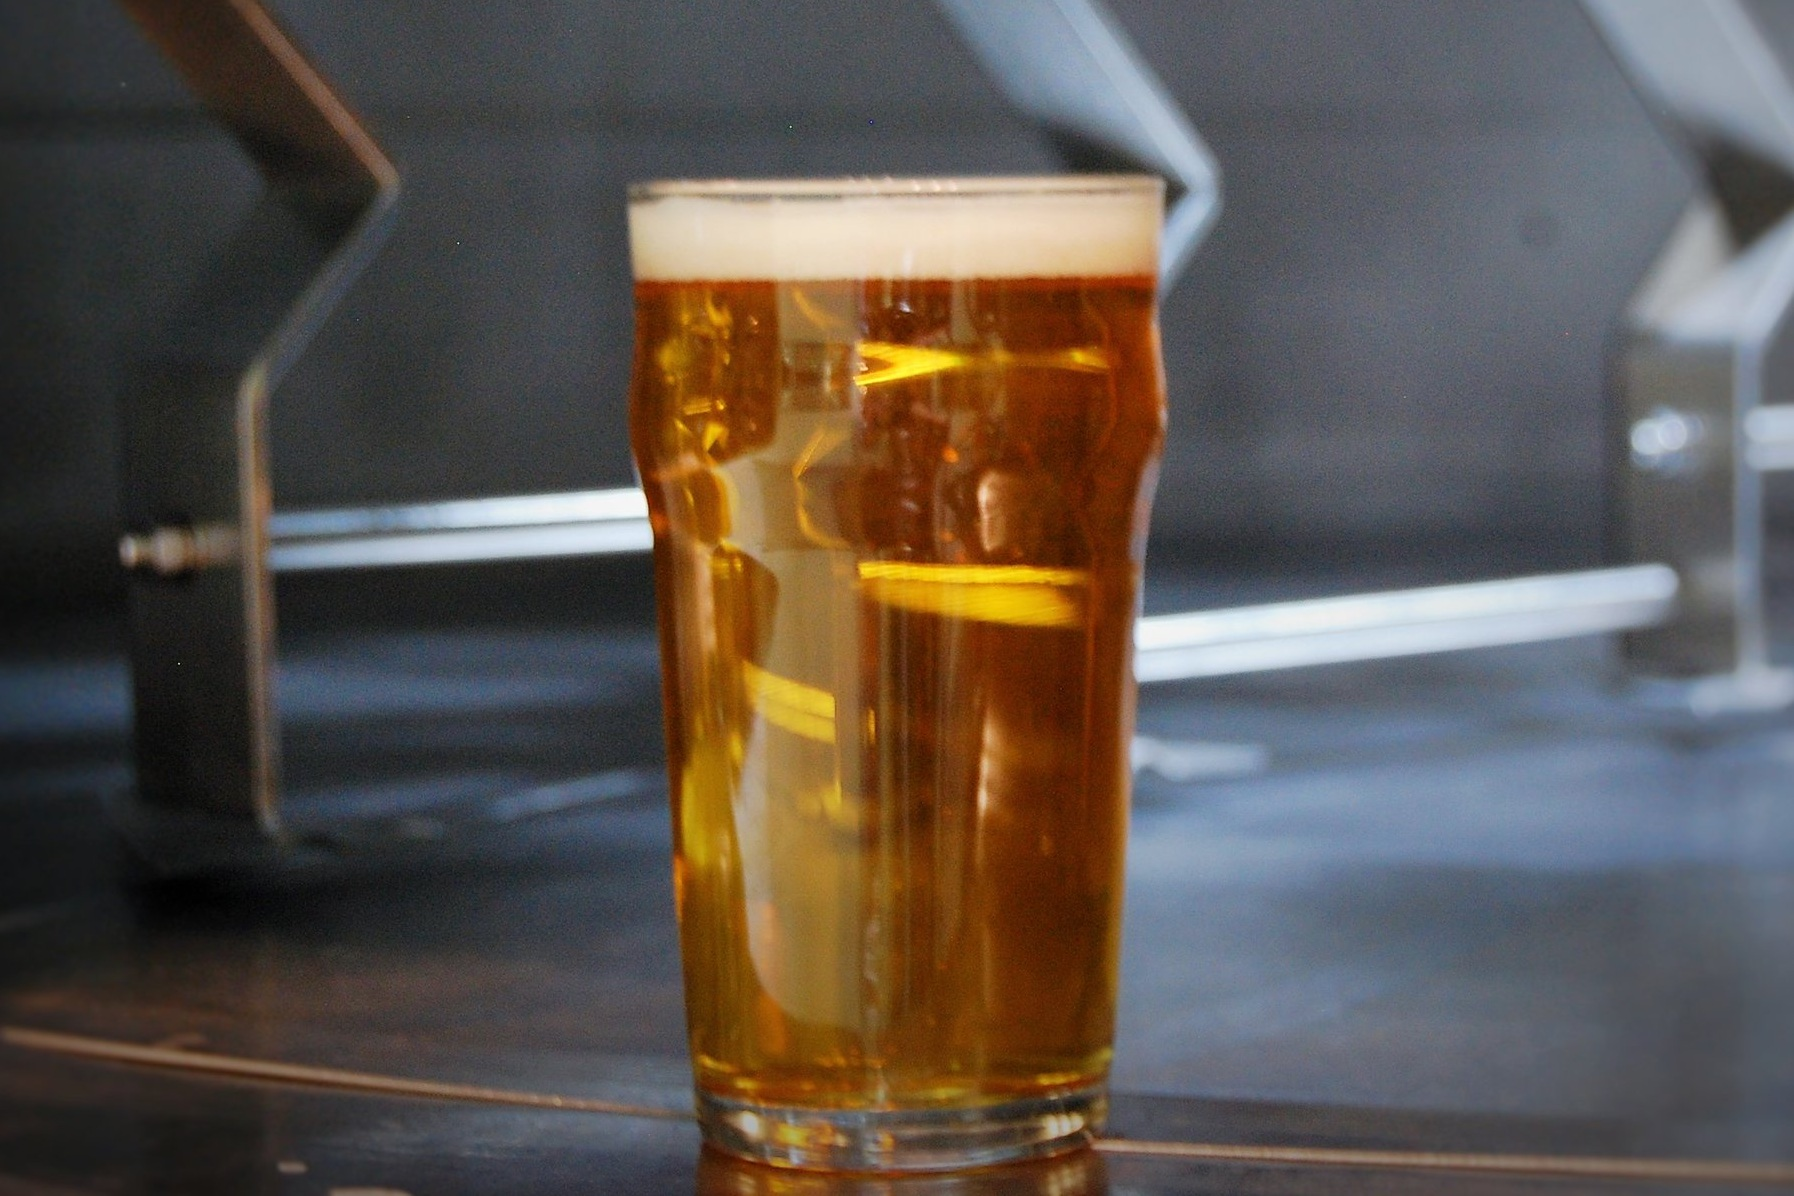 American Pale Ale - Clean Pale Ale with a strong hop presence from classic American hops. A simple malt bill and hop profile blended to create this underappreciated style.5.5% ABV 50 IBU